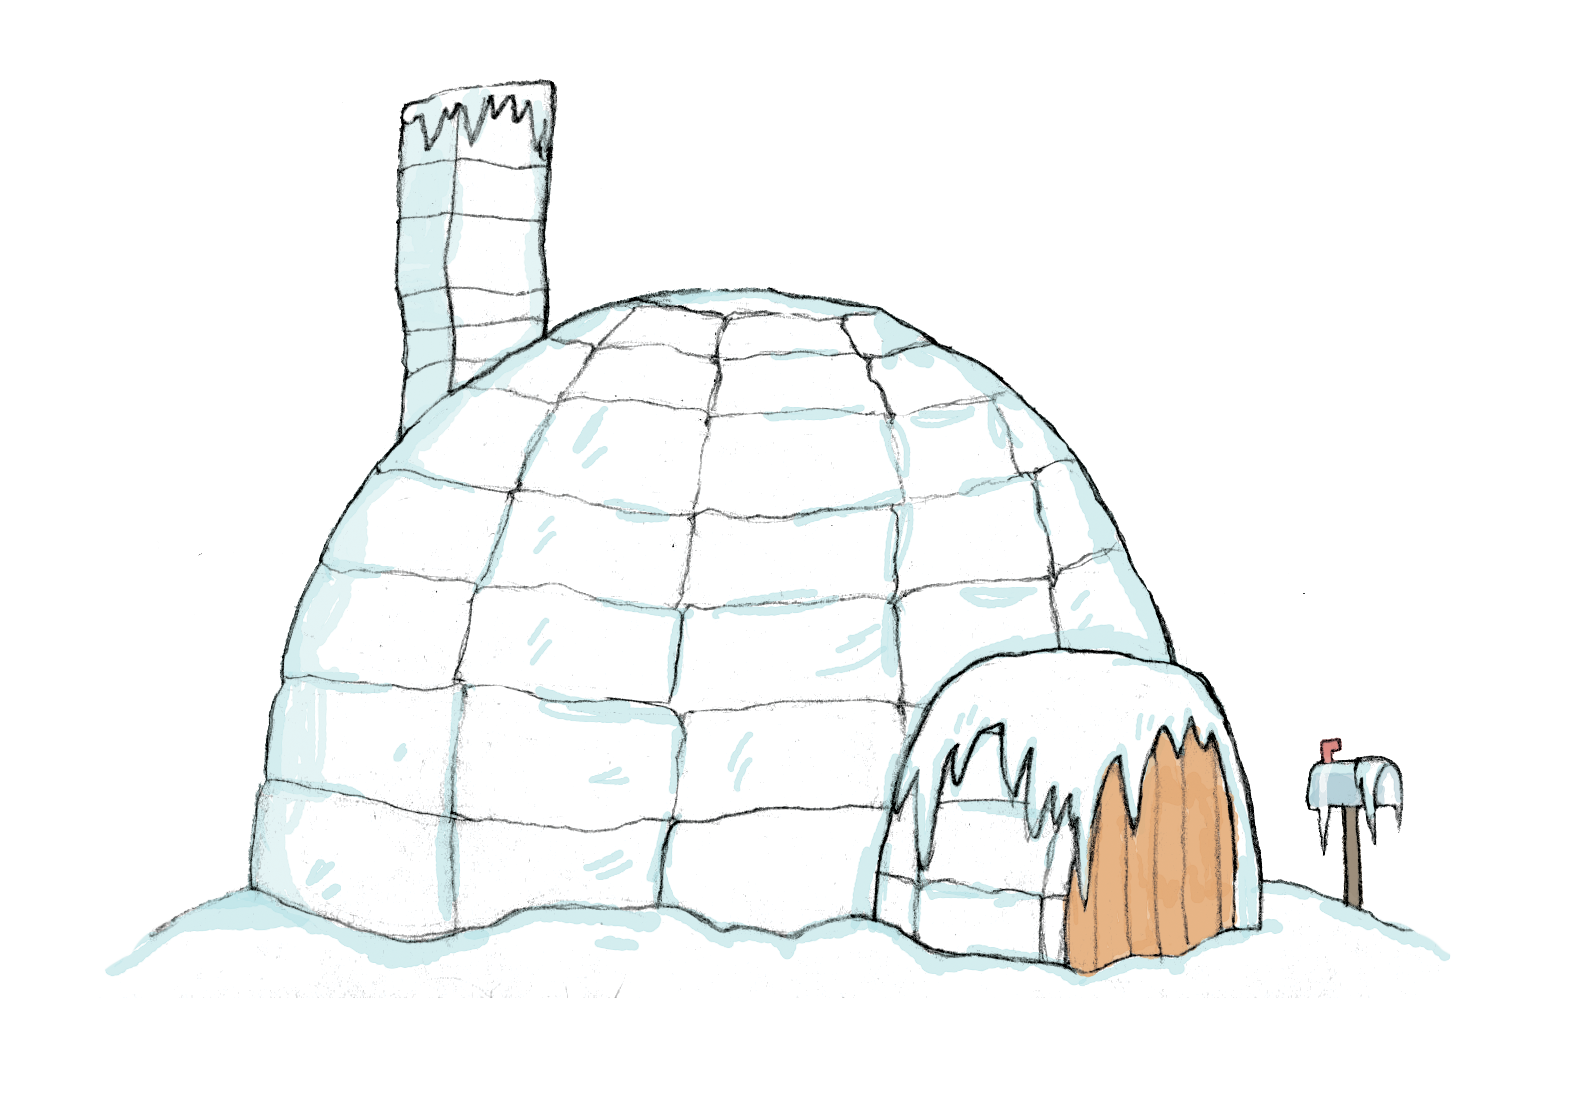 Igloo Snow House Png #33775 - Free Icons and PNG Backgrounds free library